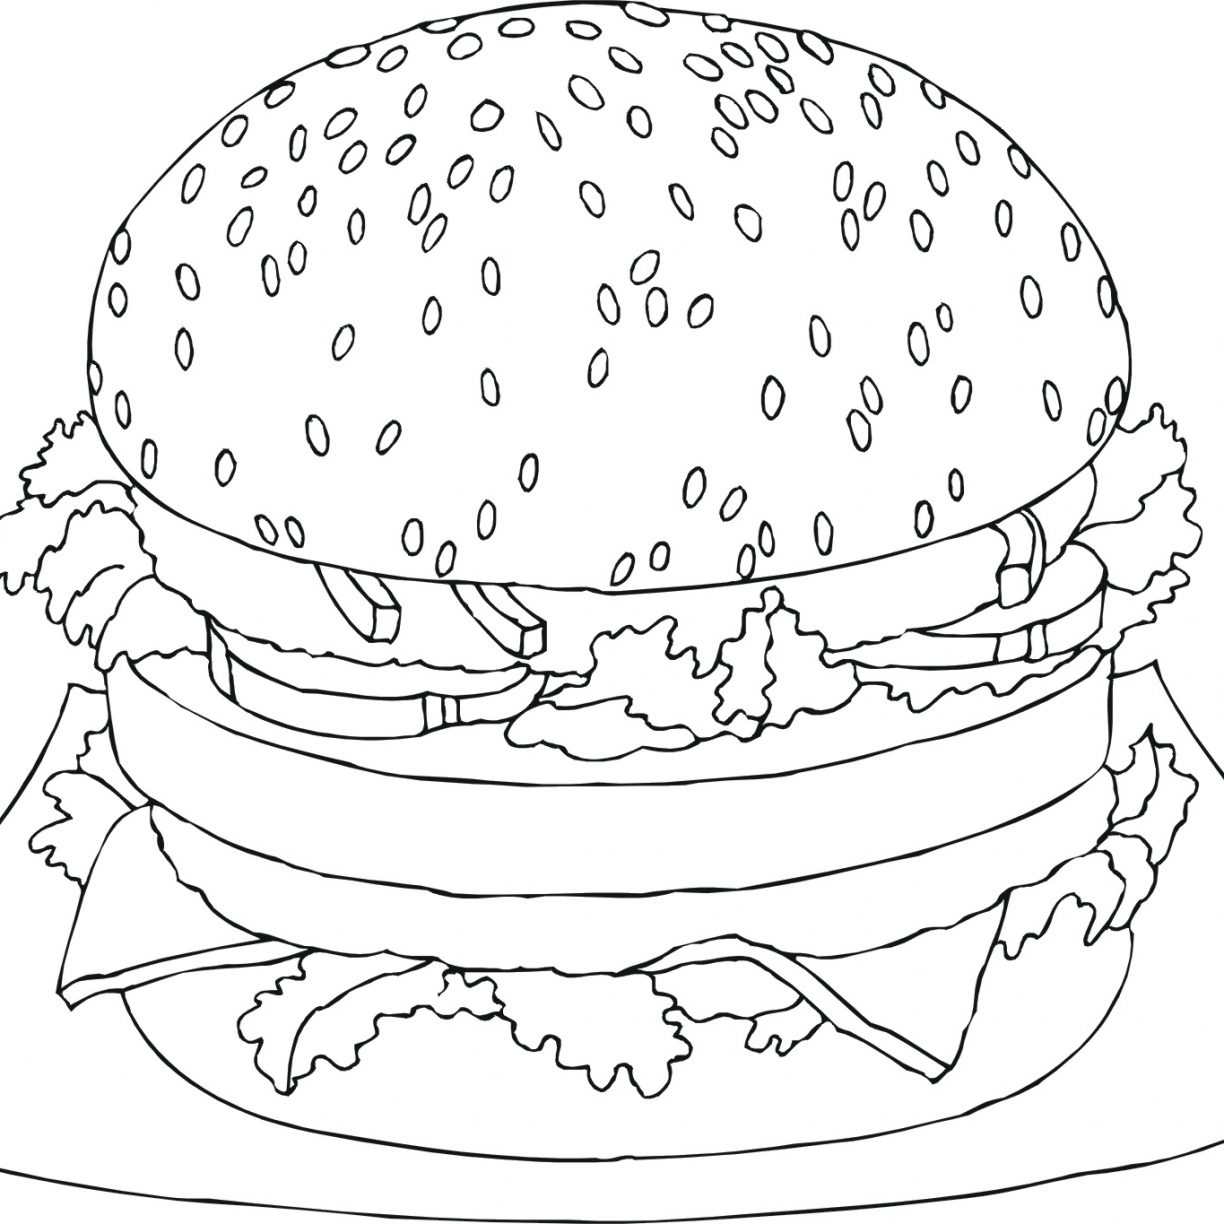 1224x1224 Food Sandwich Coloring Pages Doodle Art Free Kids Peanut Butter